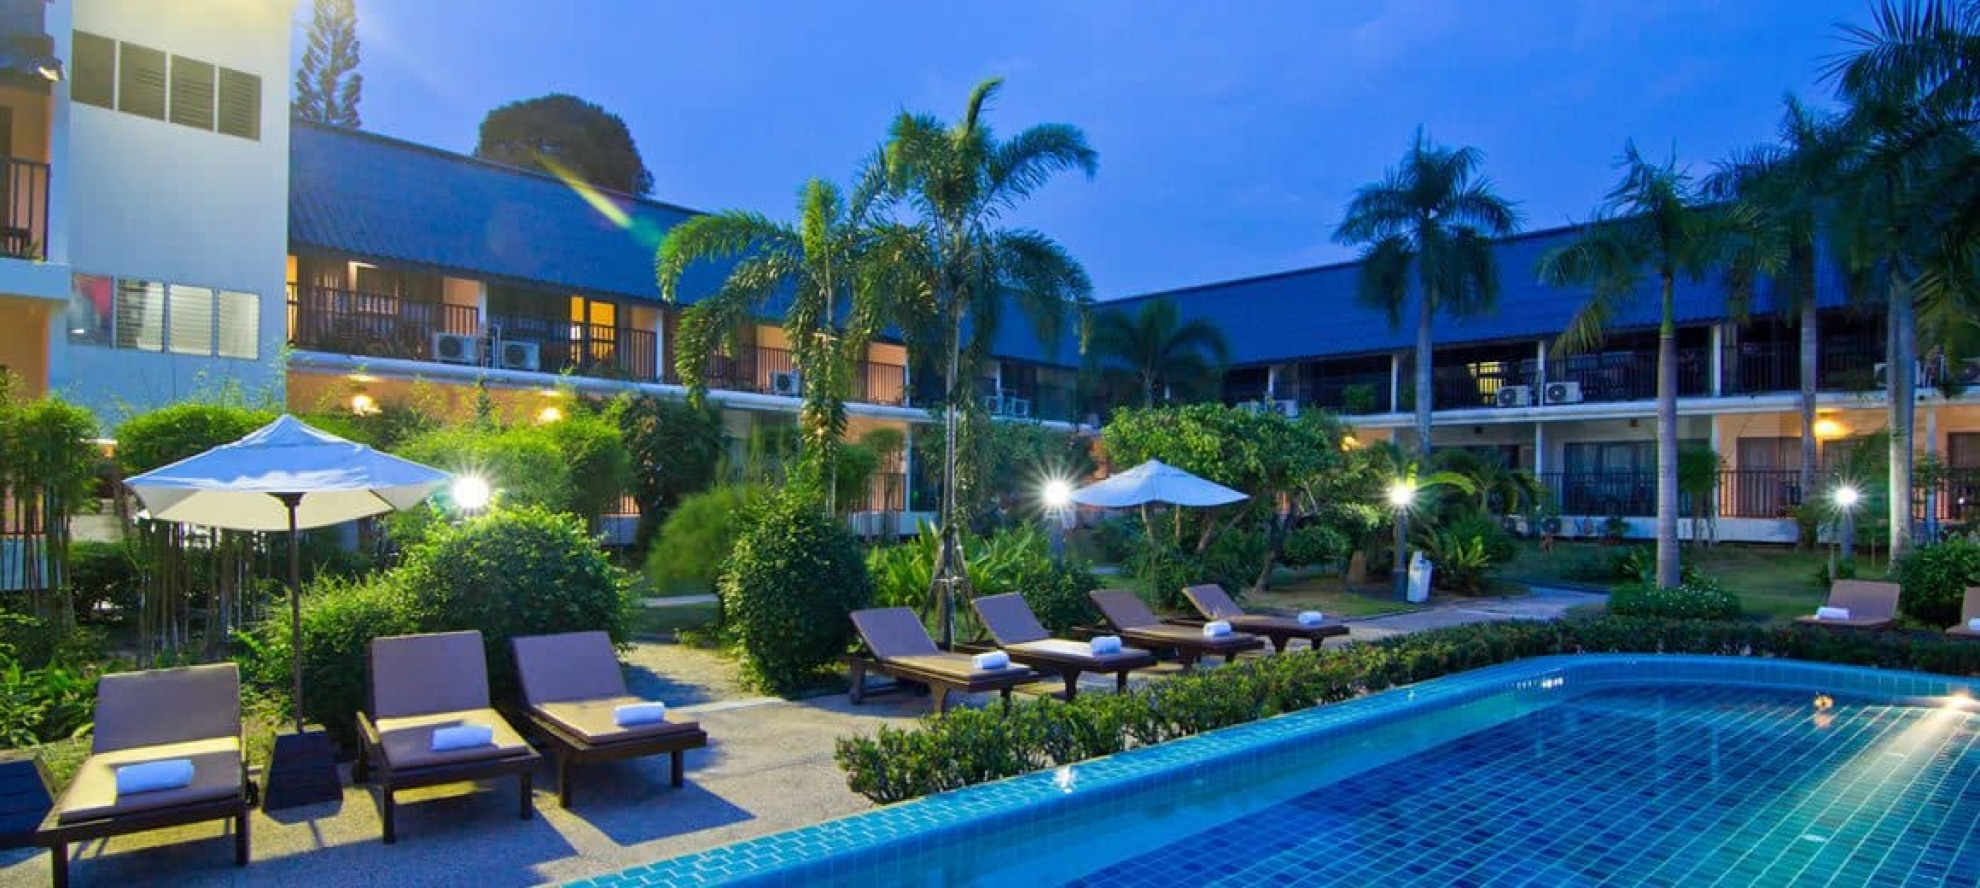 Sunshine garden resort pattaya thailand green golf for Katzennetz balkon mit hotel pattaya garden thailand